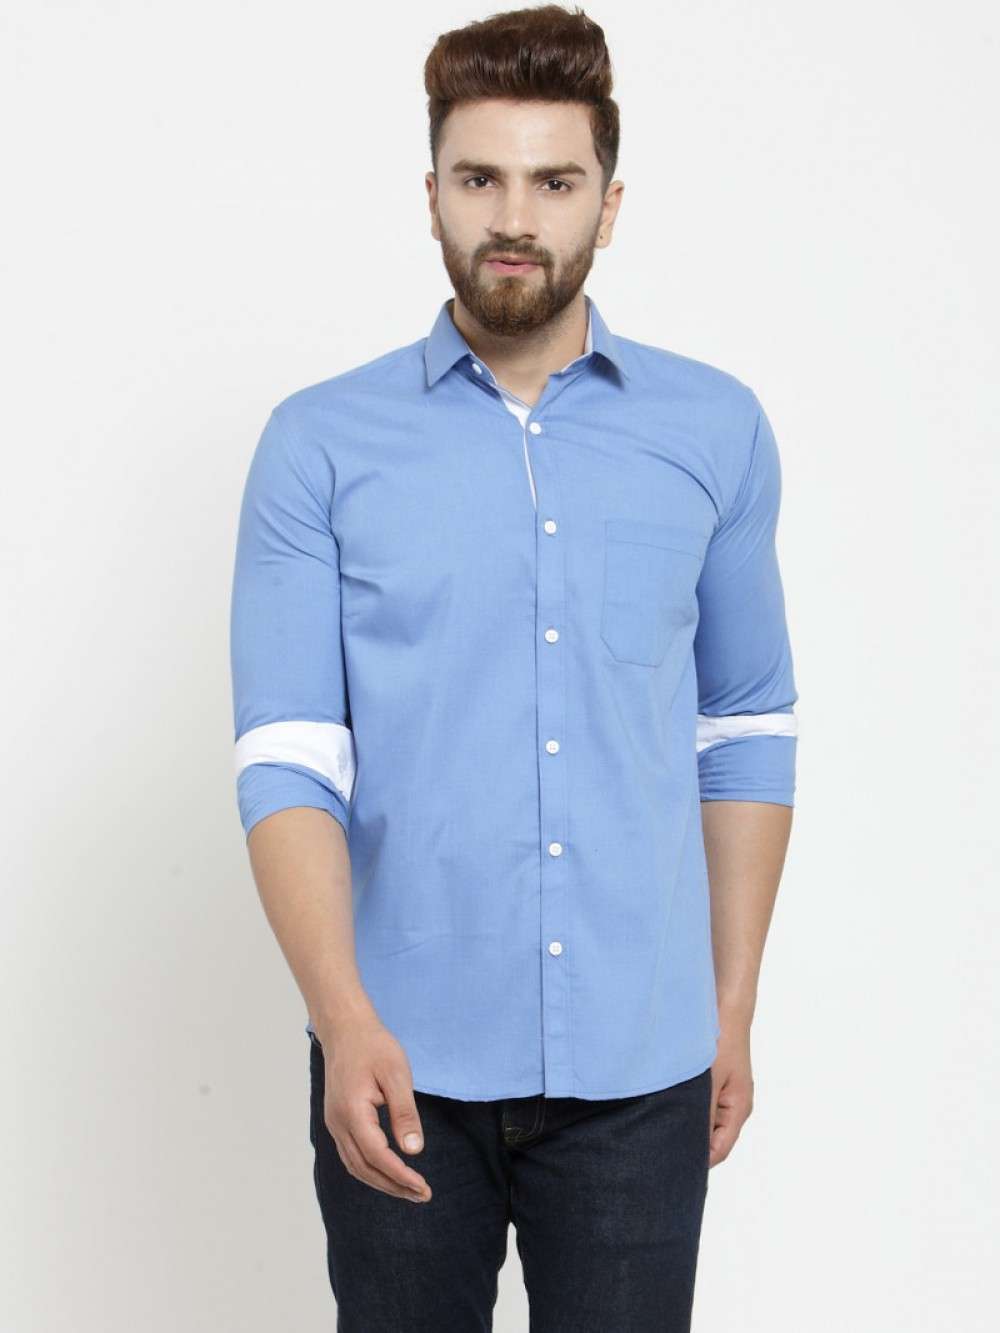 Attractive Plain Sky Blue Full Sleeves Shirt